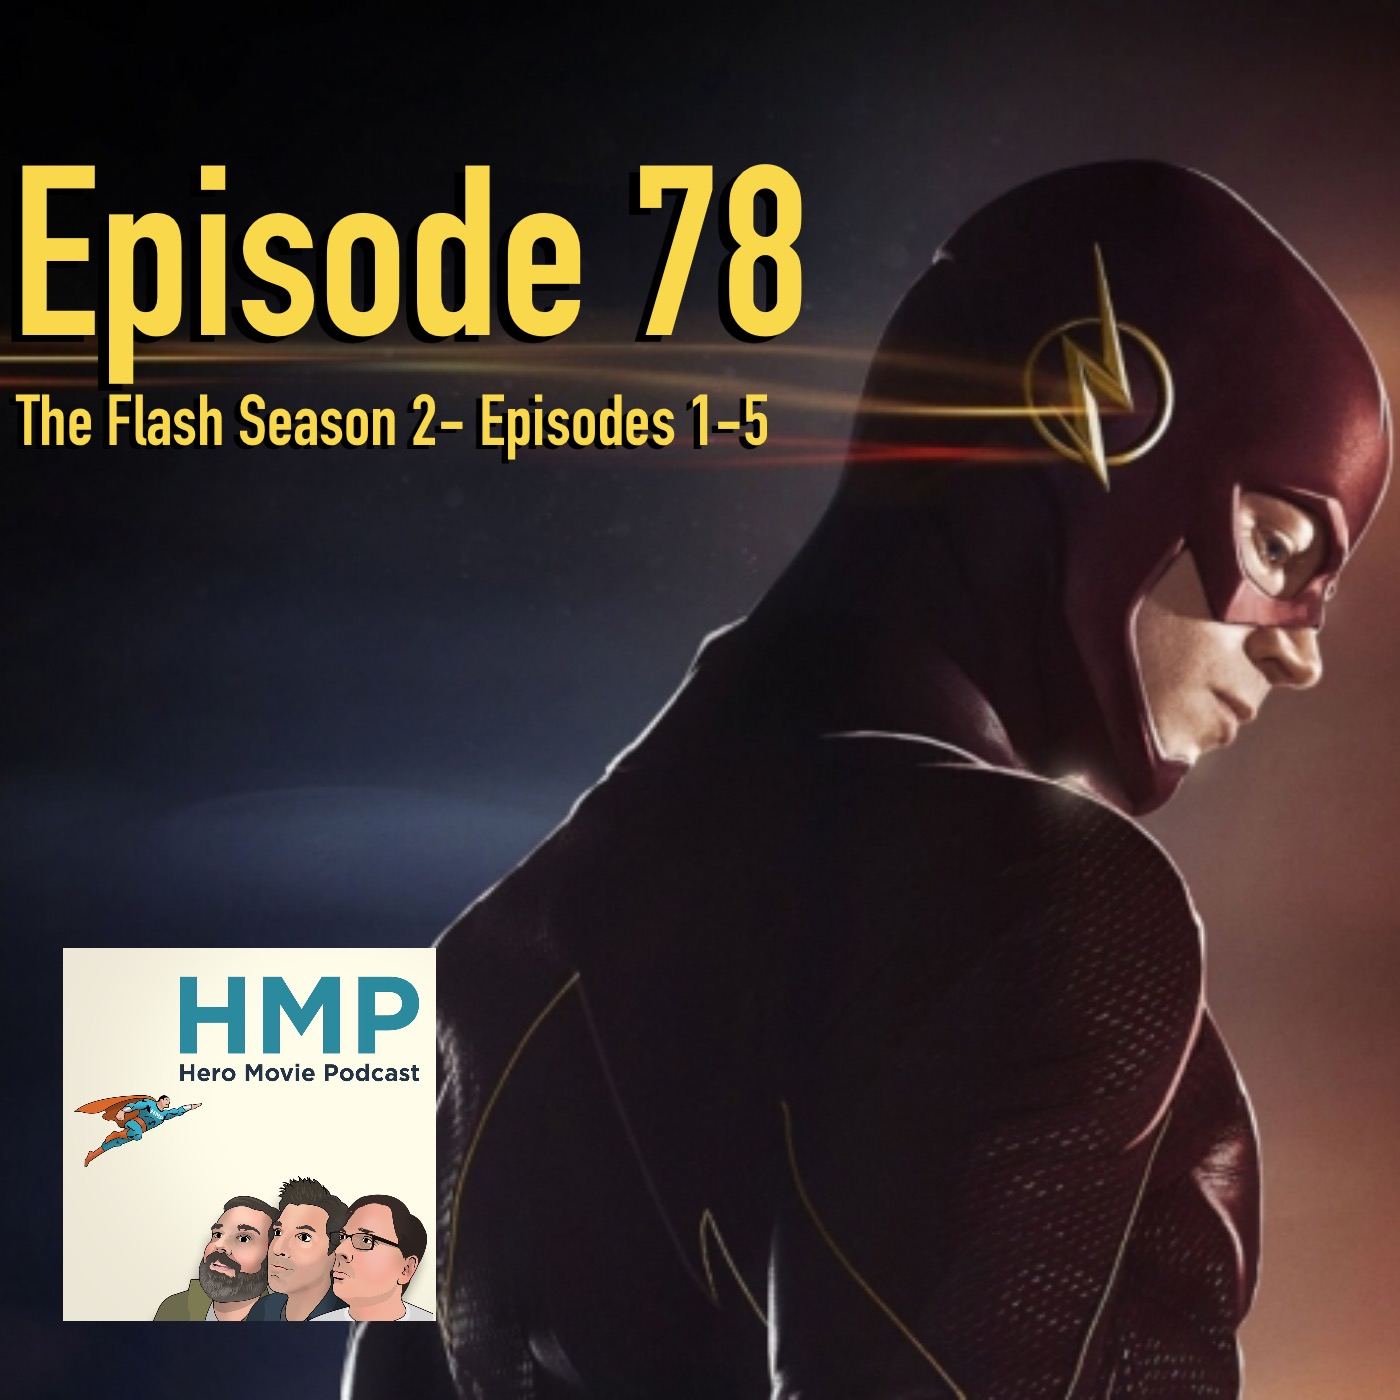 Episode 78- The Flash- Season 2, Episodes 1-5